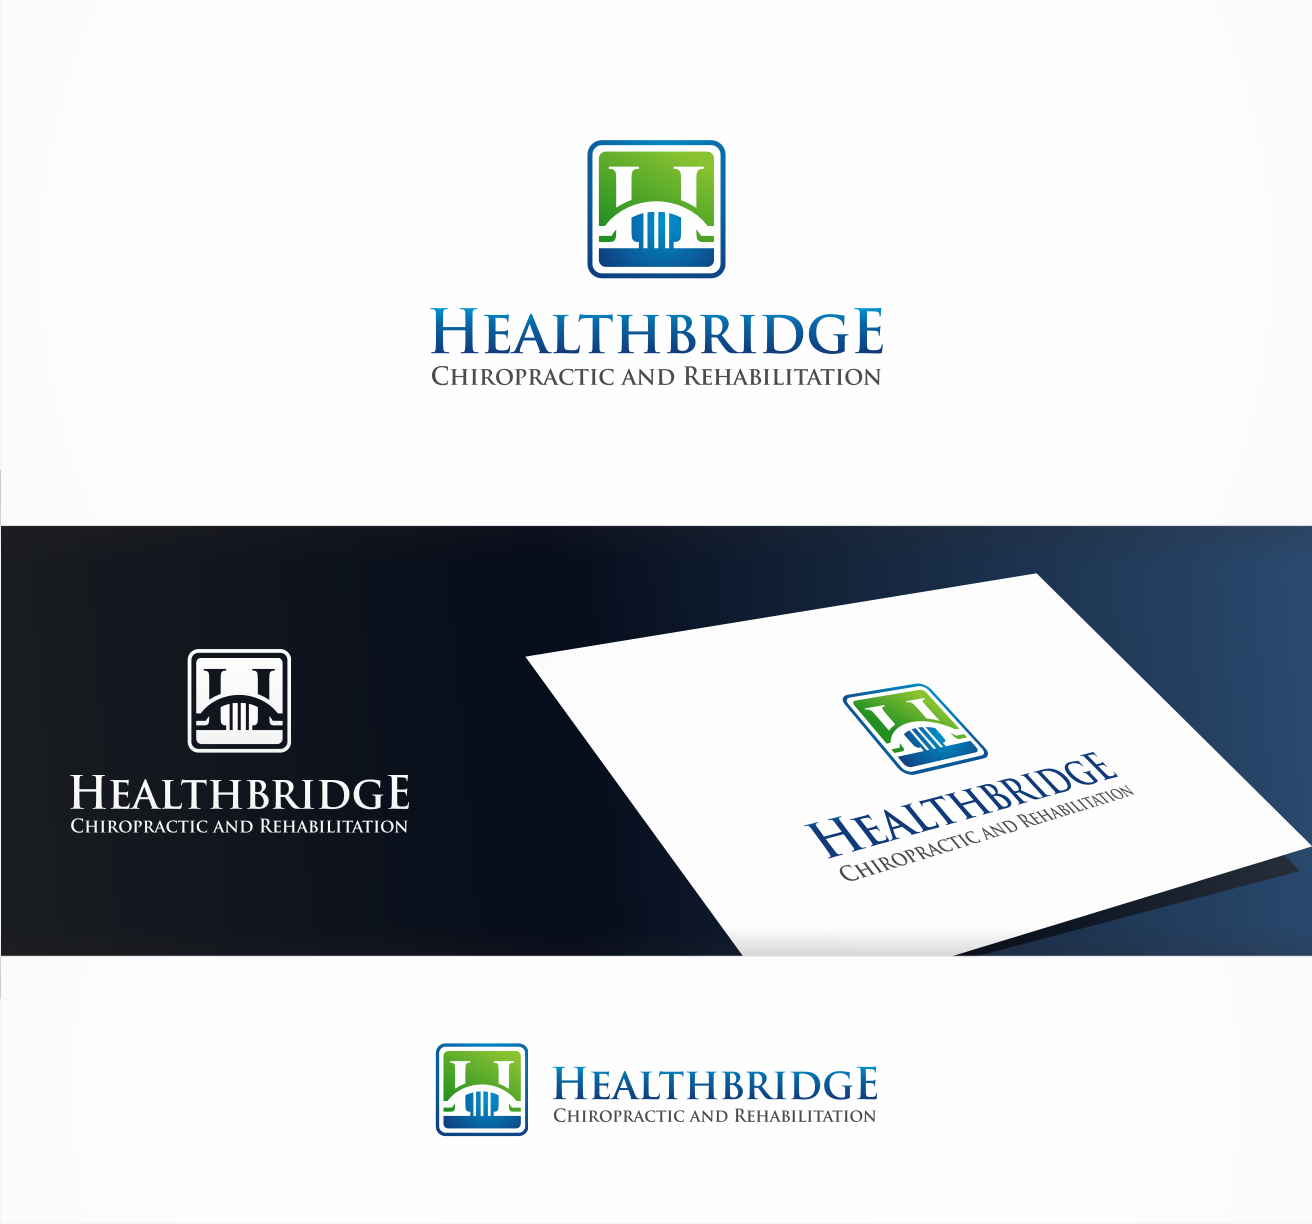 logo for Healthbridge Chiropractic and Rehabilitation